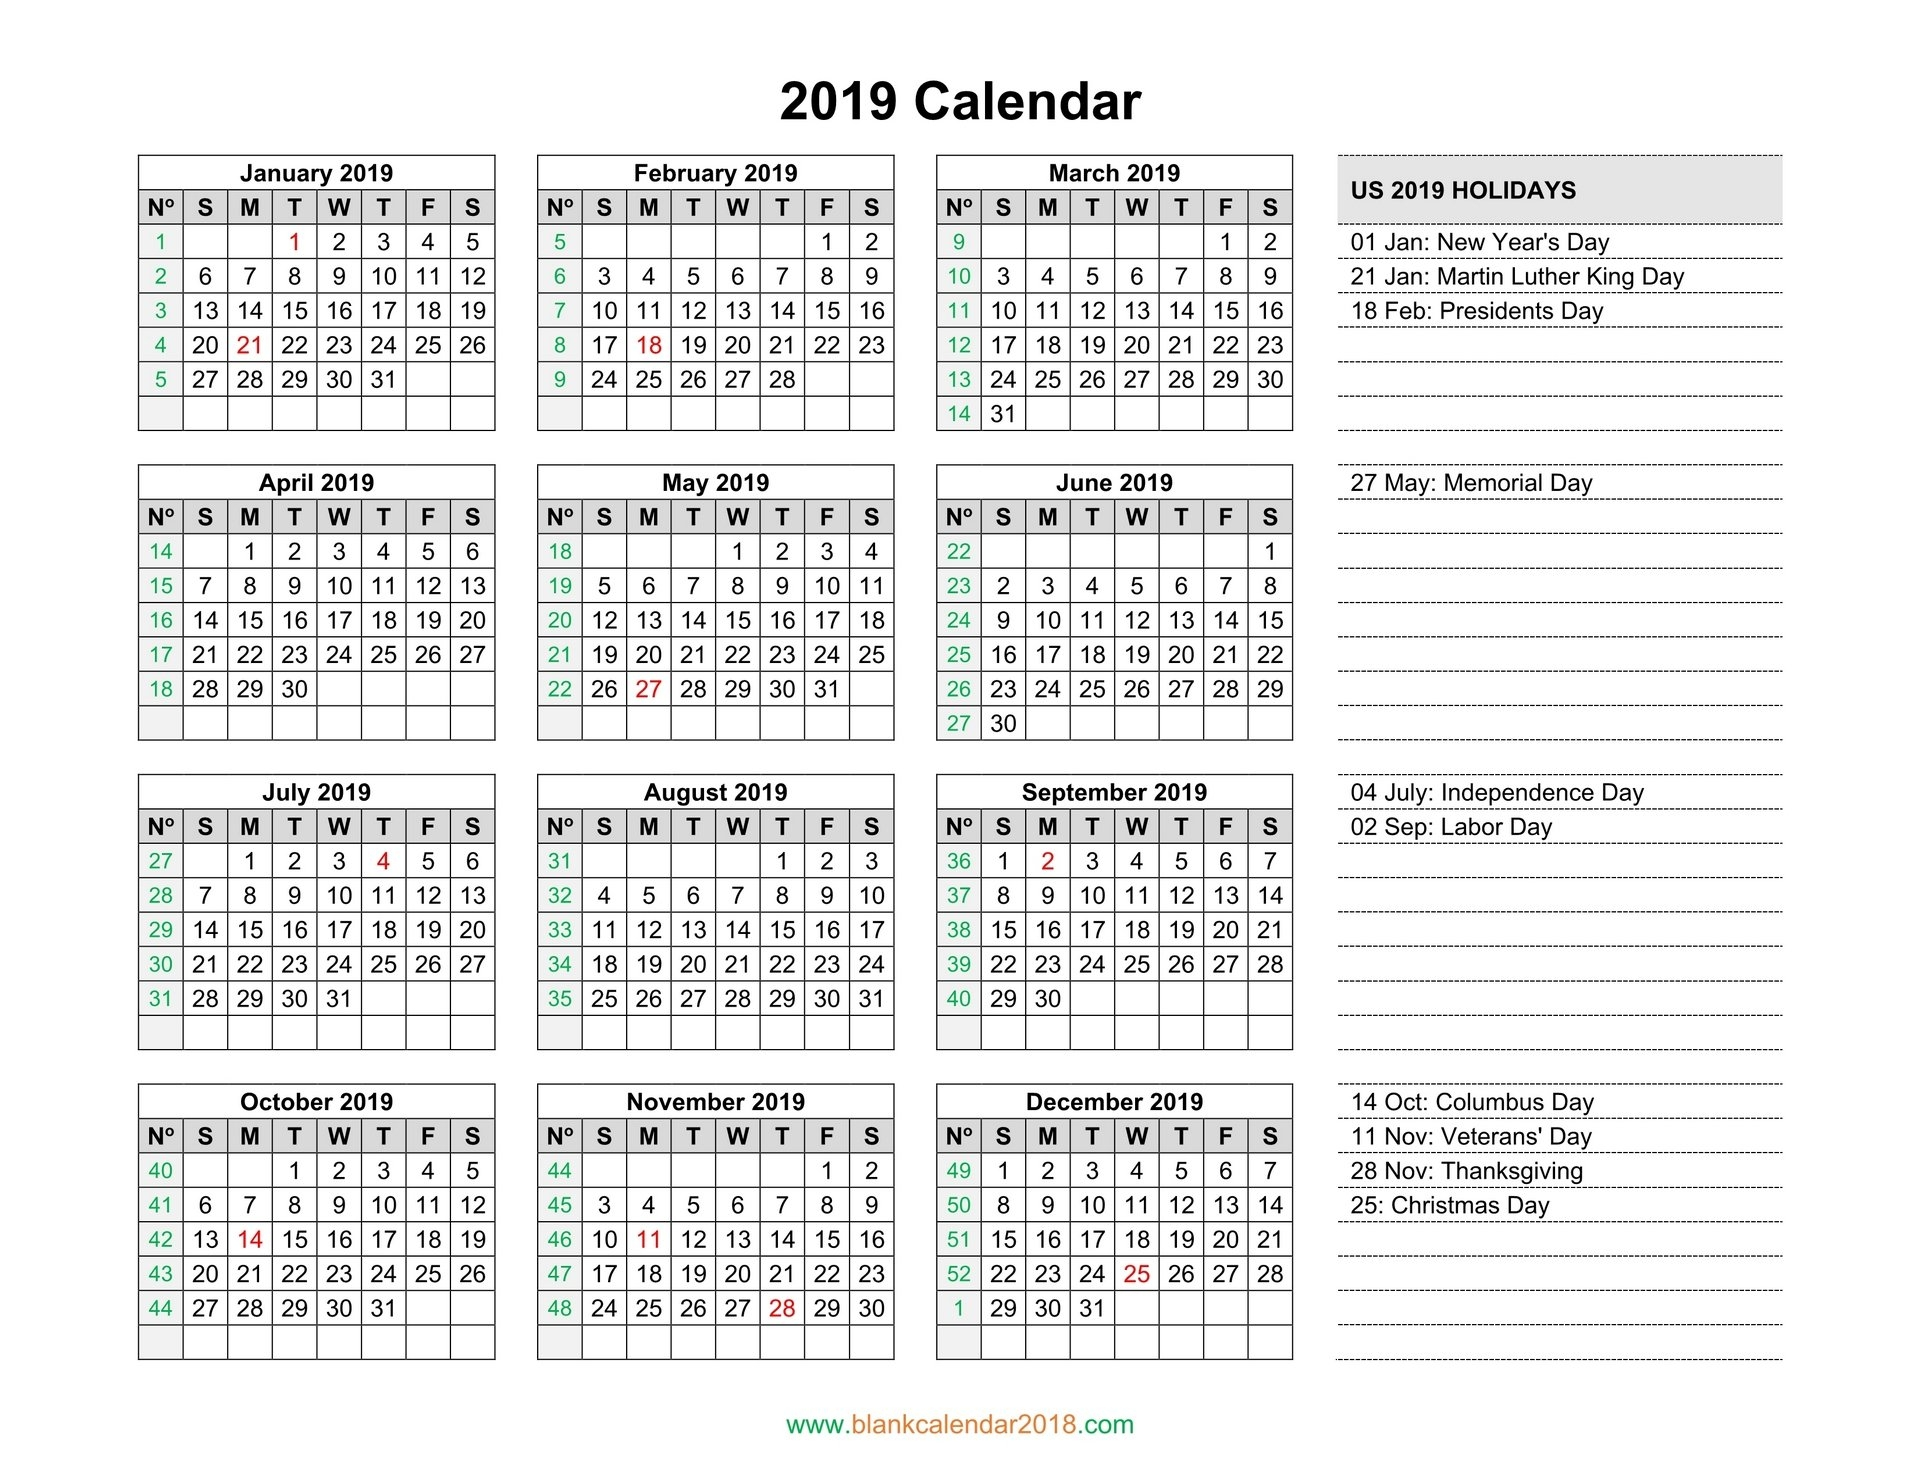 Blank Calendar 2019 Calendar 2019 With Holidays